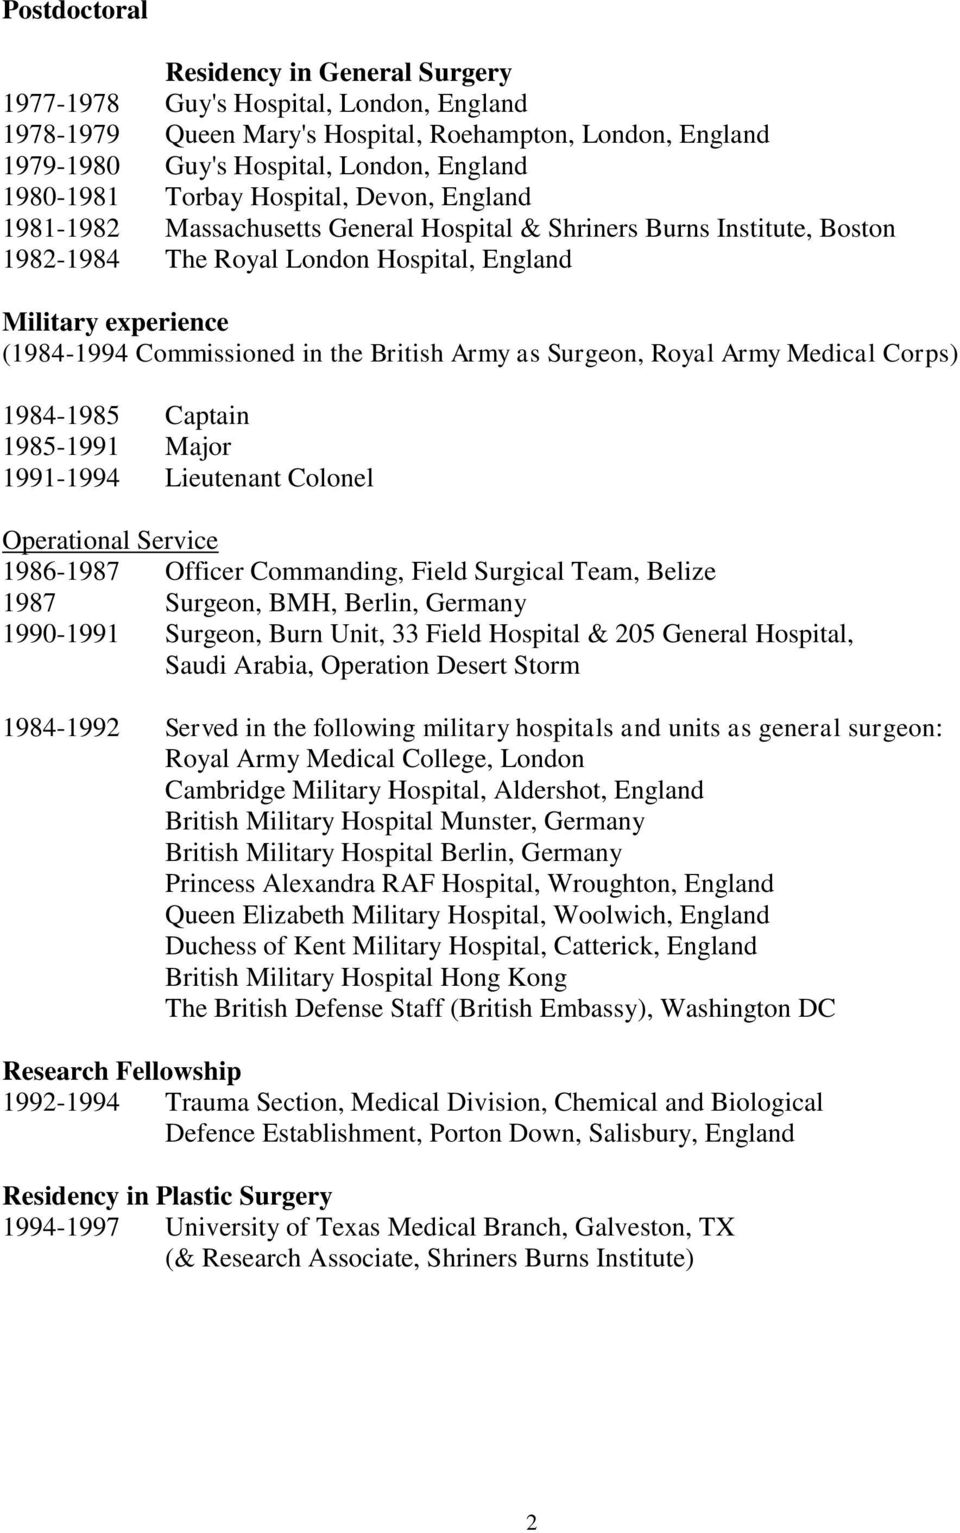 the British Army as Surgeon, Royal Army Medical Corps) 1984-1985 Captain 1985-1991 Major 1991-1994 Lieutenant Colonel Operational Service 1986-1987 Officer Commanding, Field Surgical Team, Belize